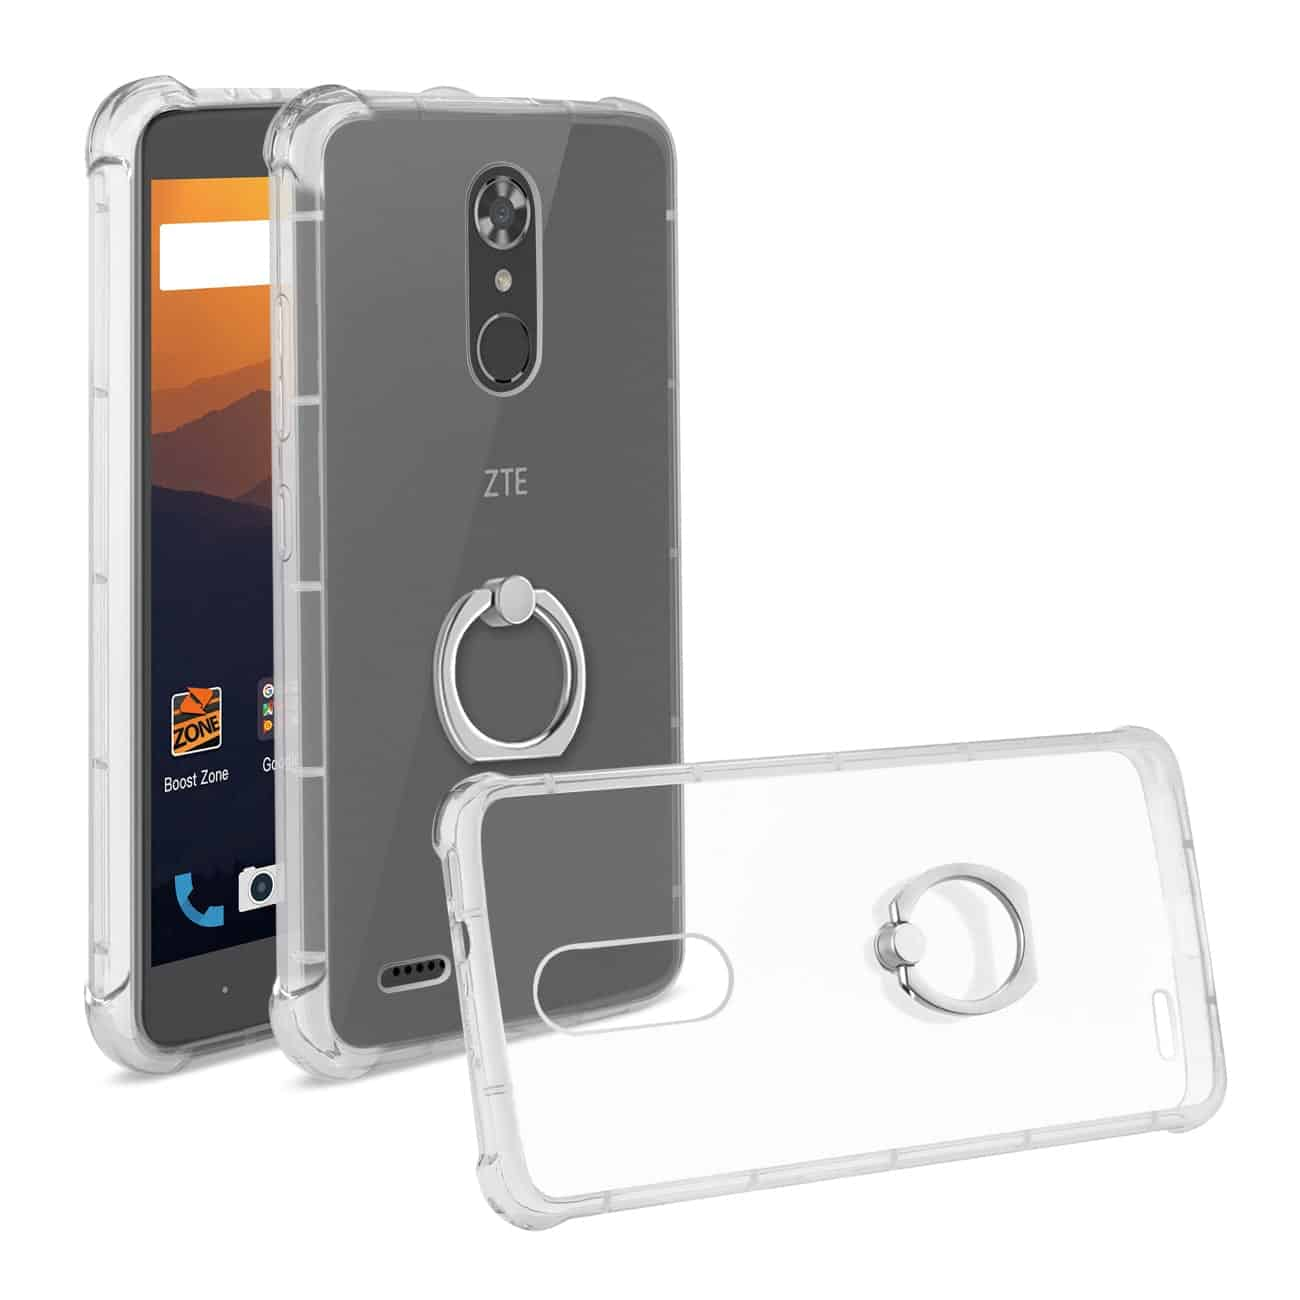 ZTE MAX XL/ N9560 TRANSPARENT AIR CUSHION PROTECTOR BUMPER CASE WITH RING HOLDER IN CLEAR